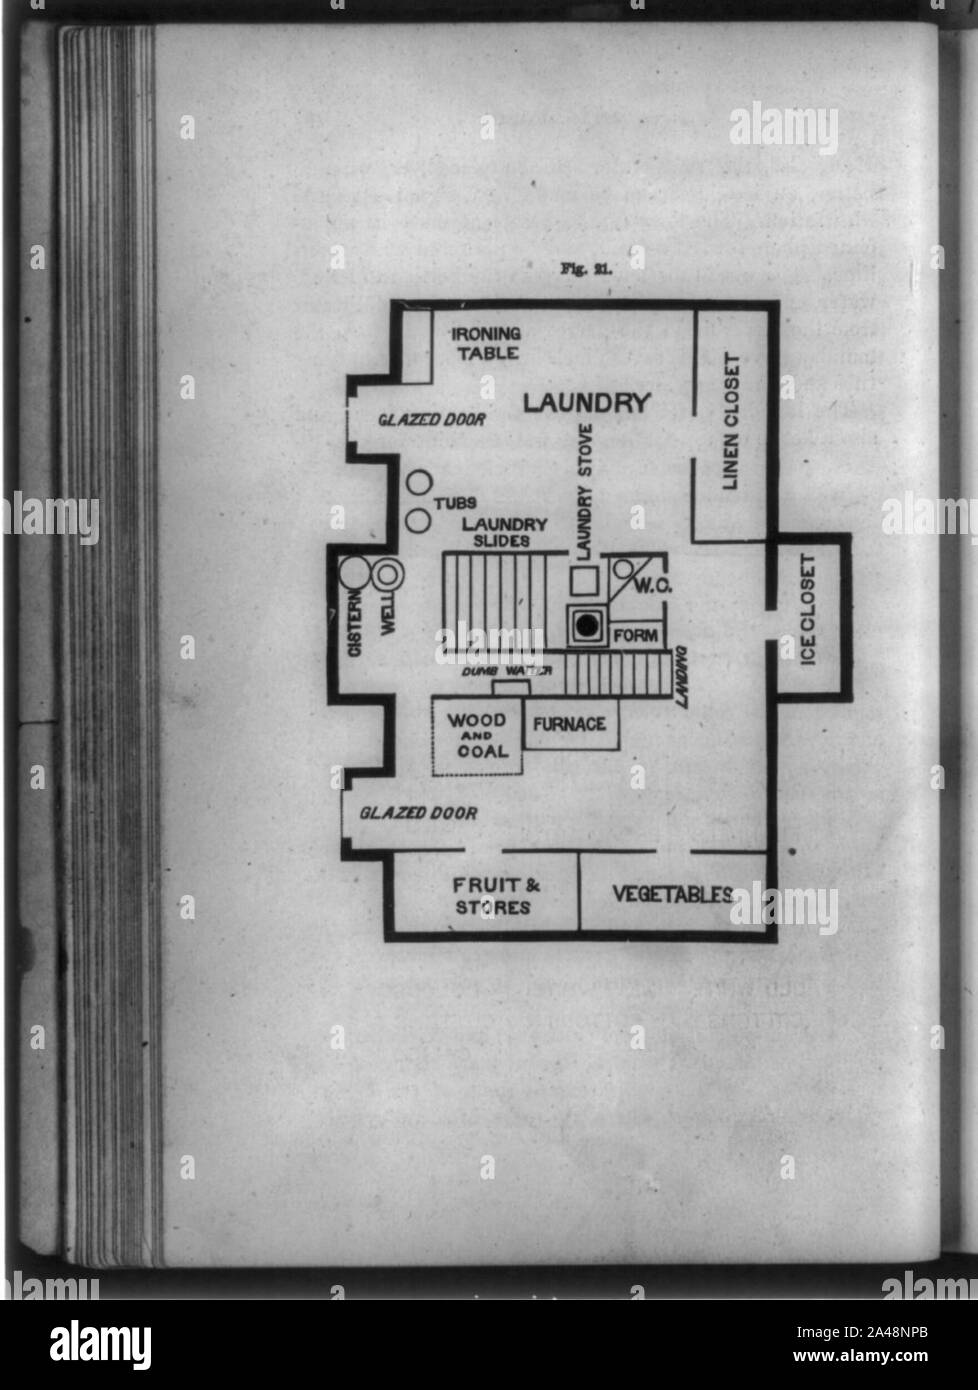 Floor Plan Of Laundry And Food Storage Rooms Abstract Medium 1 Print Stock Photo Alamy